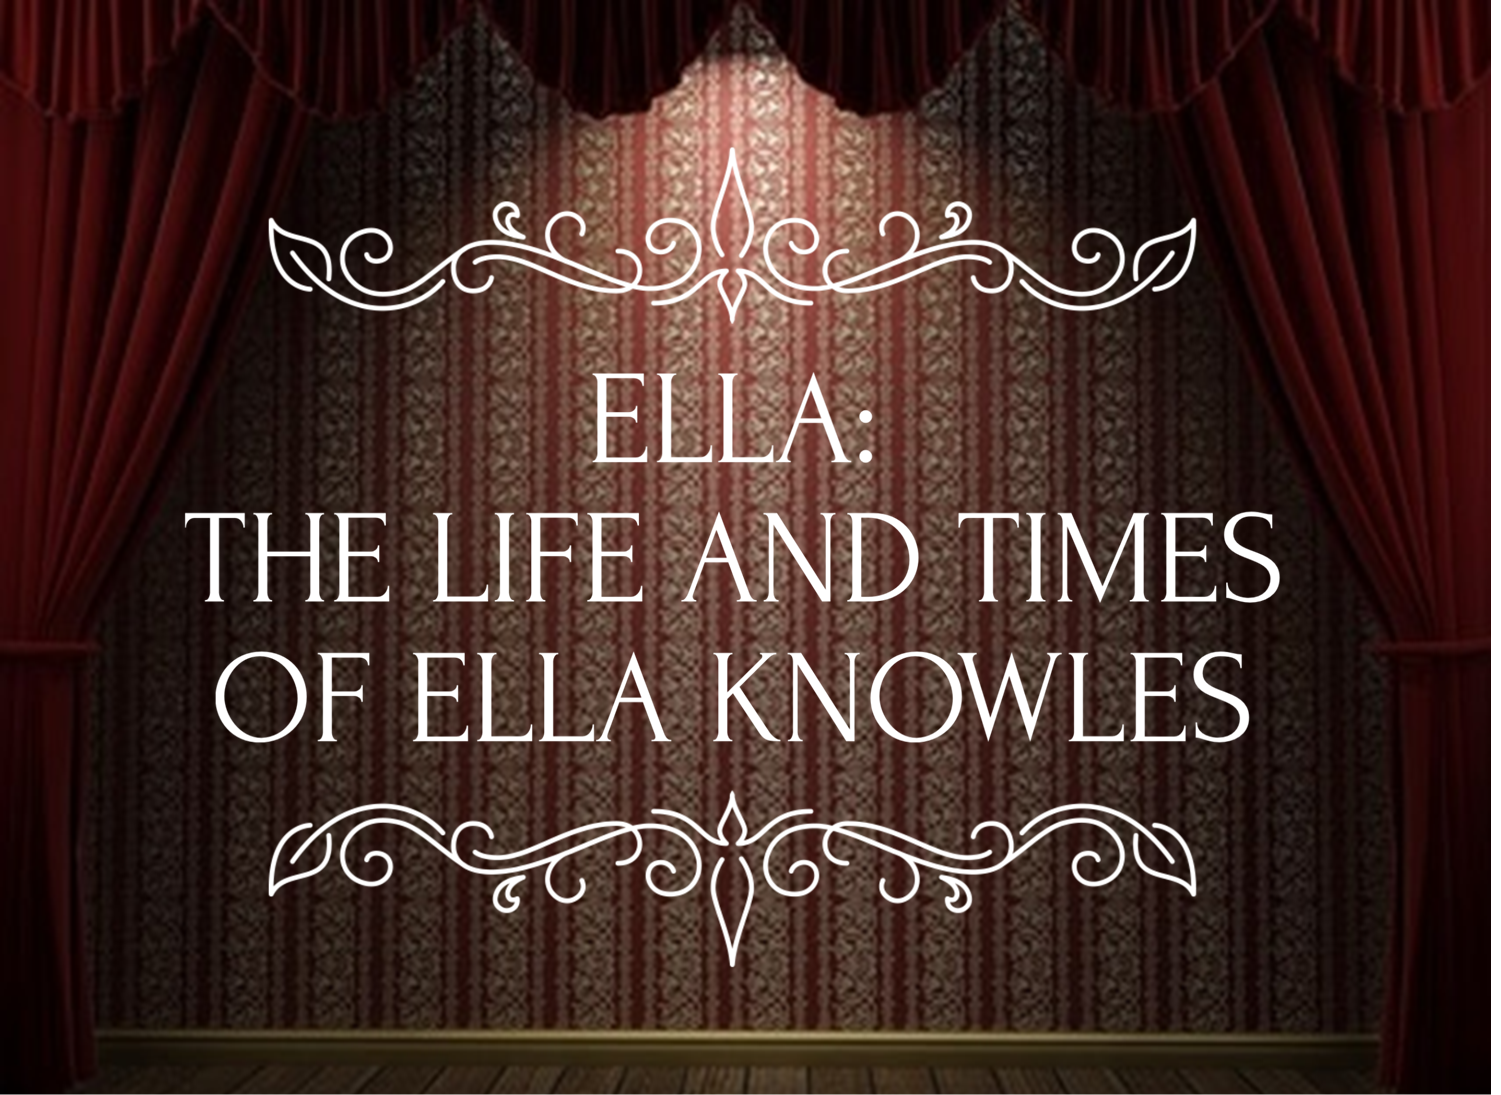 Ella: The Life and Times of Ella Knowles